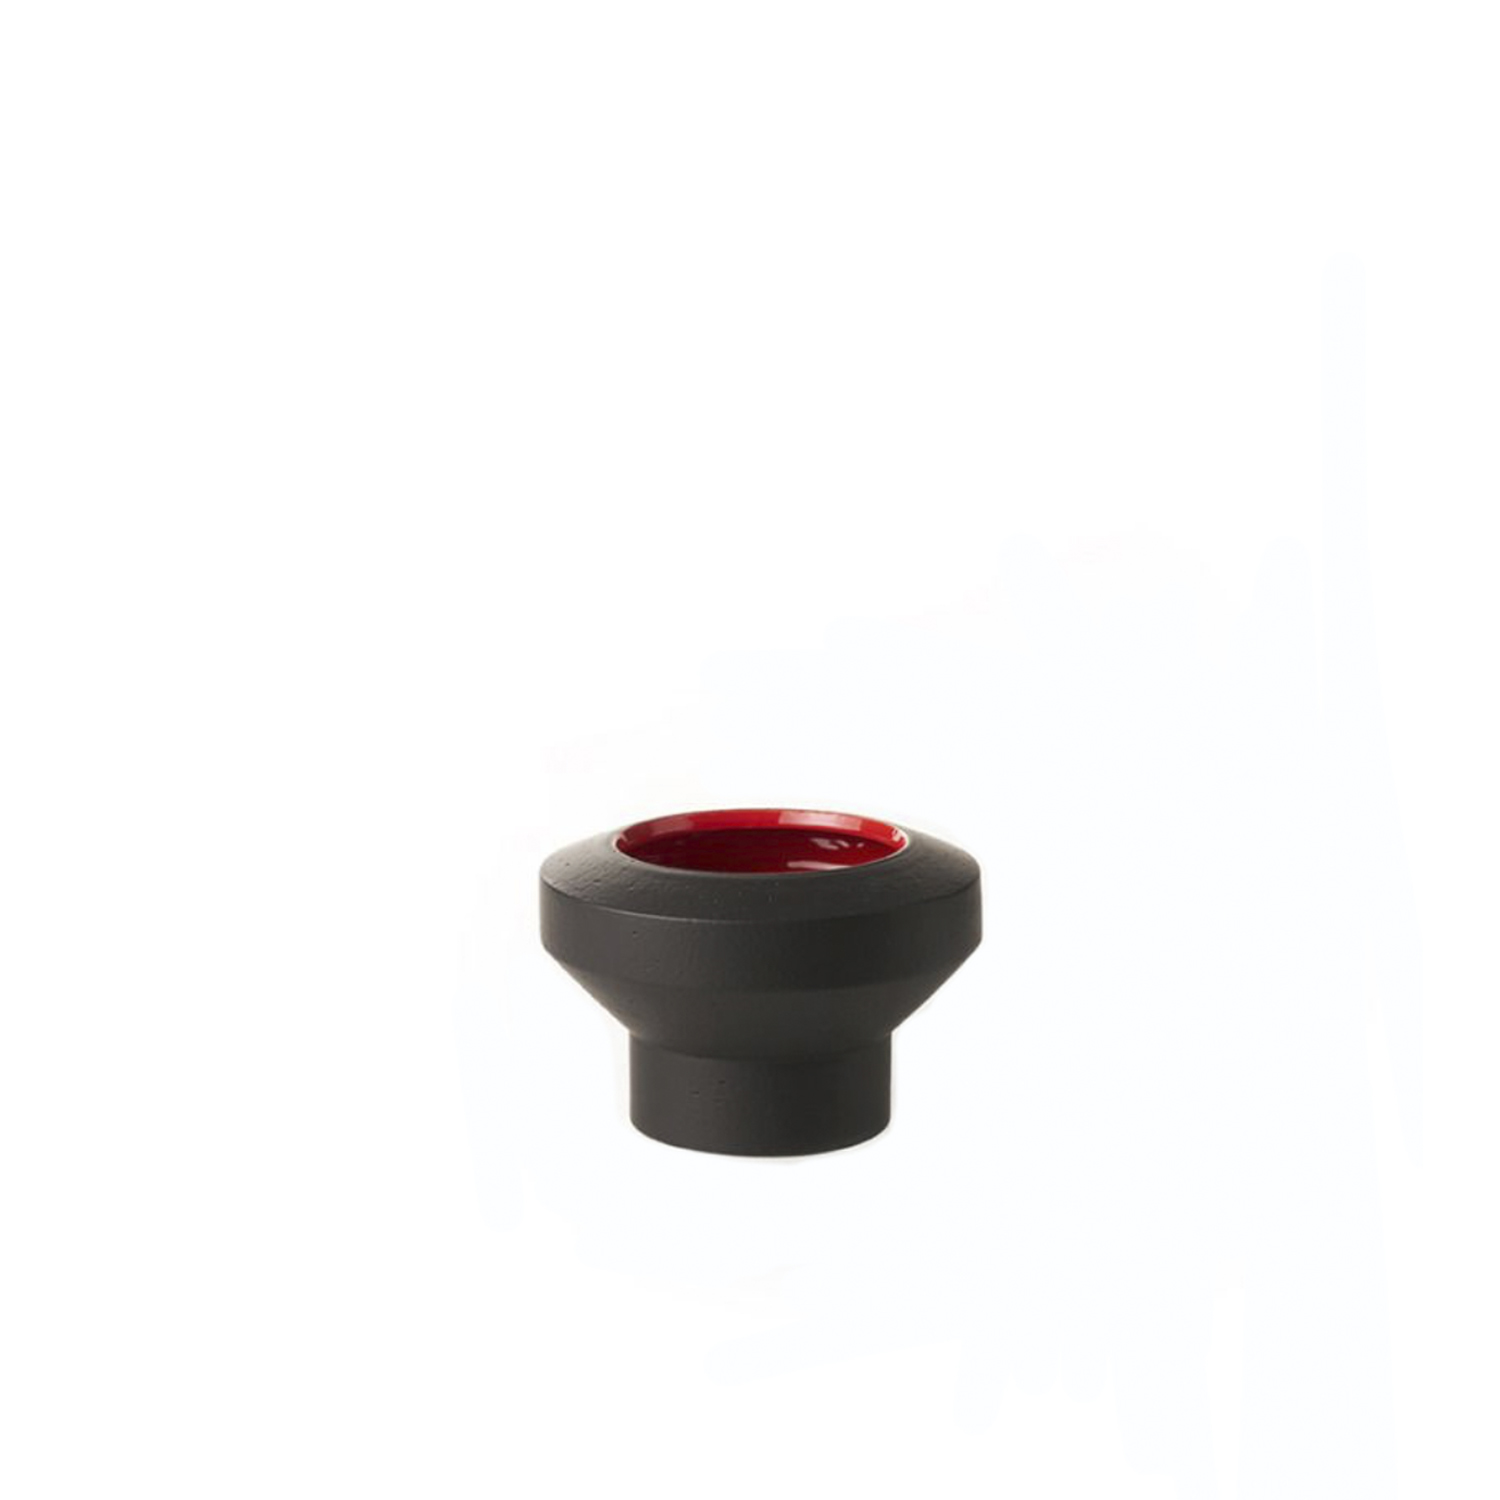 Two-Toned Small Centrepiece - Centre-piece hand-turned in white refractory clay. Two-tone matt black and glossy red glaze.